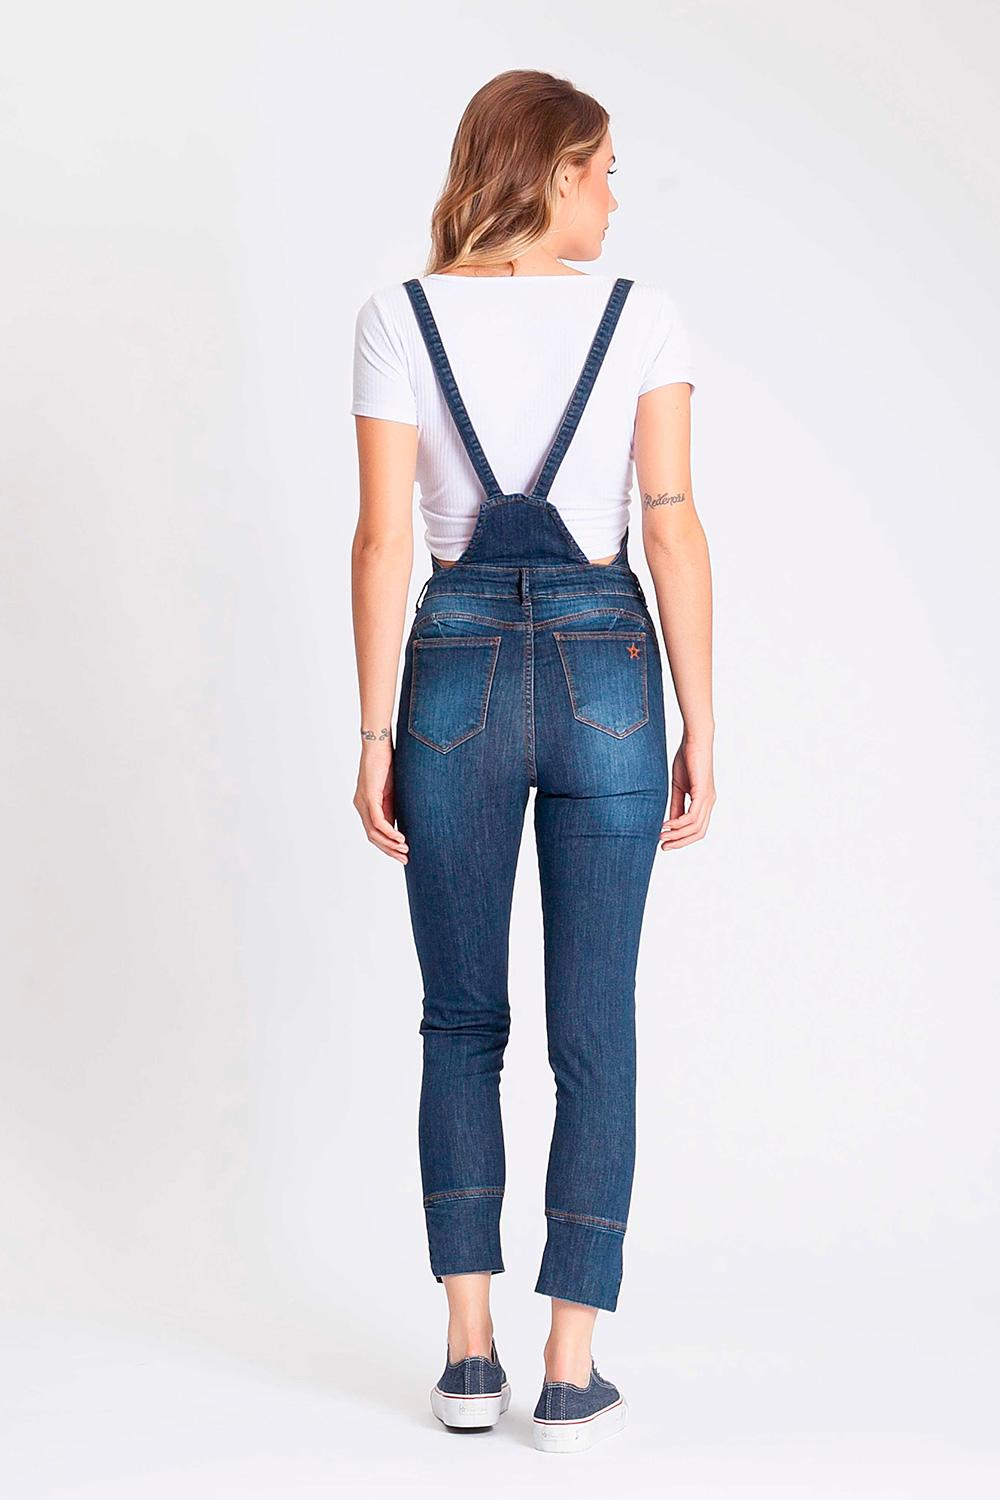 Jeans-34-3